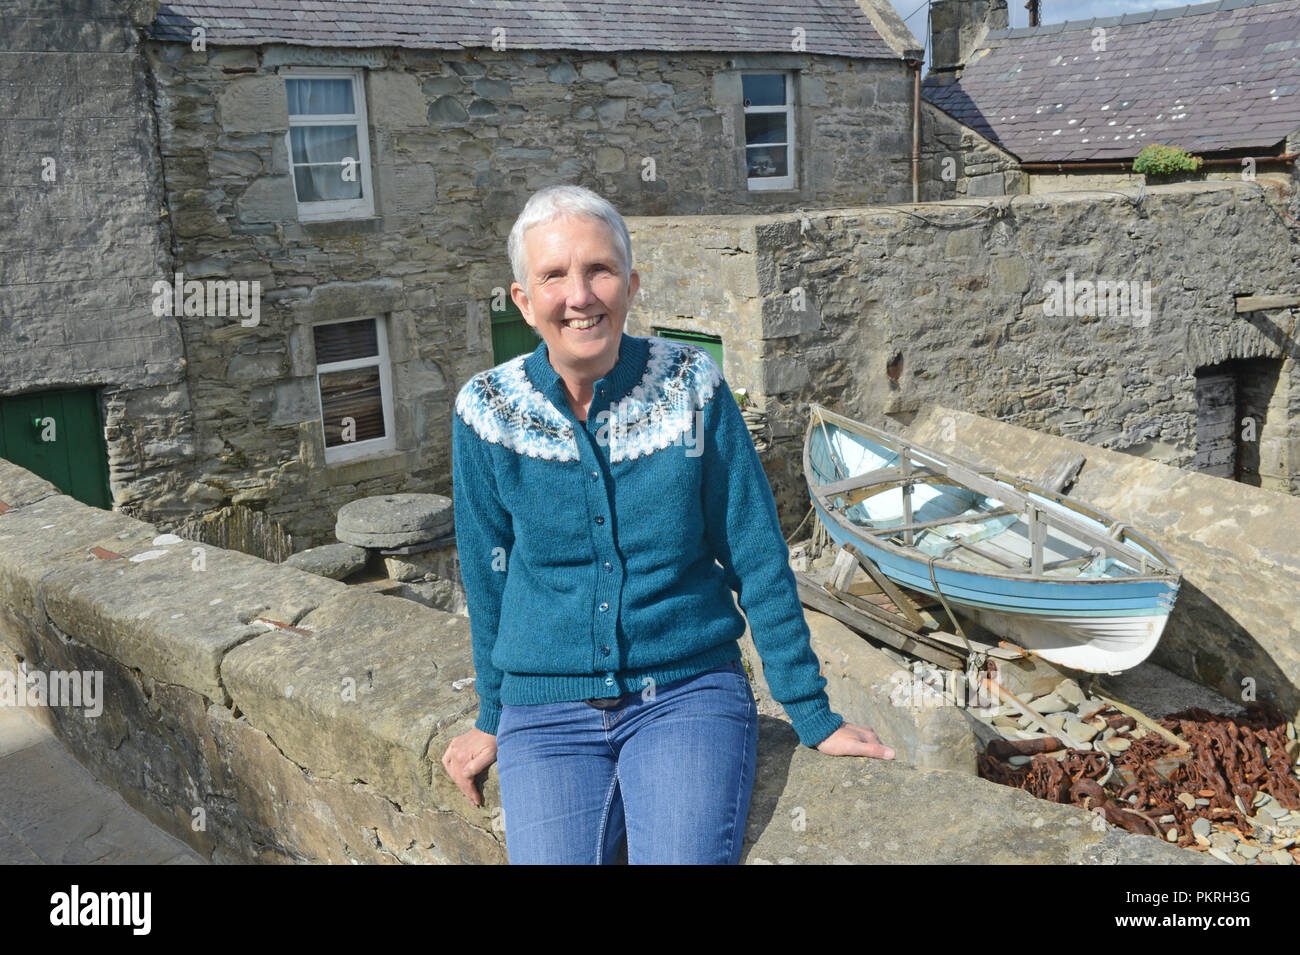 Ann Cleeves Shetland author outside of her character Jimmy Perez home in the TV series Shetland produced by ITV and BBC - Stock Image